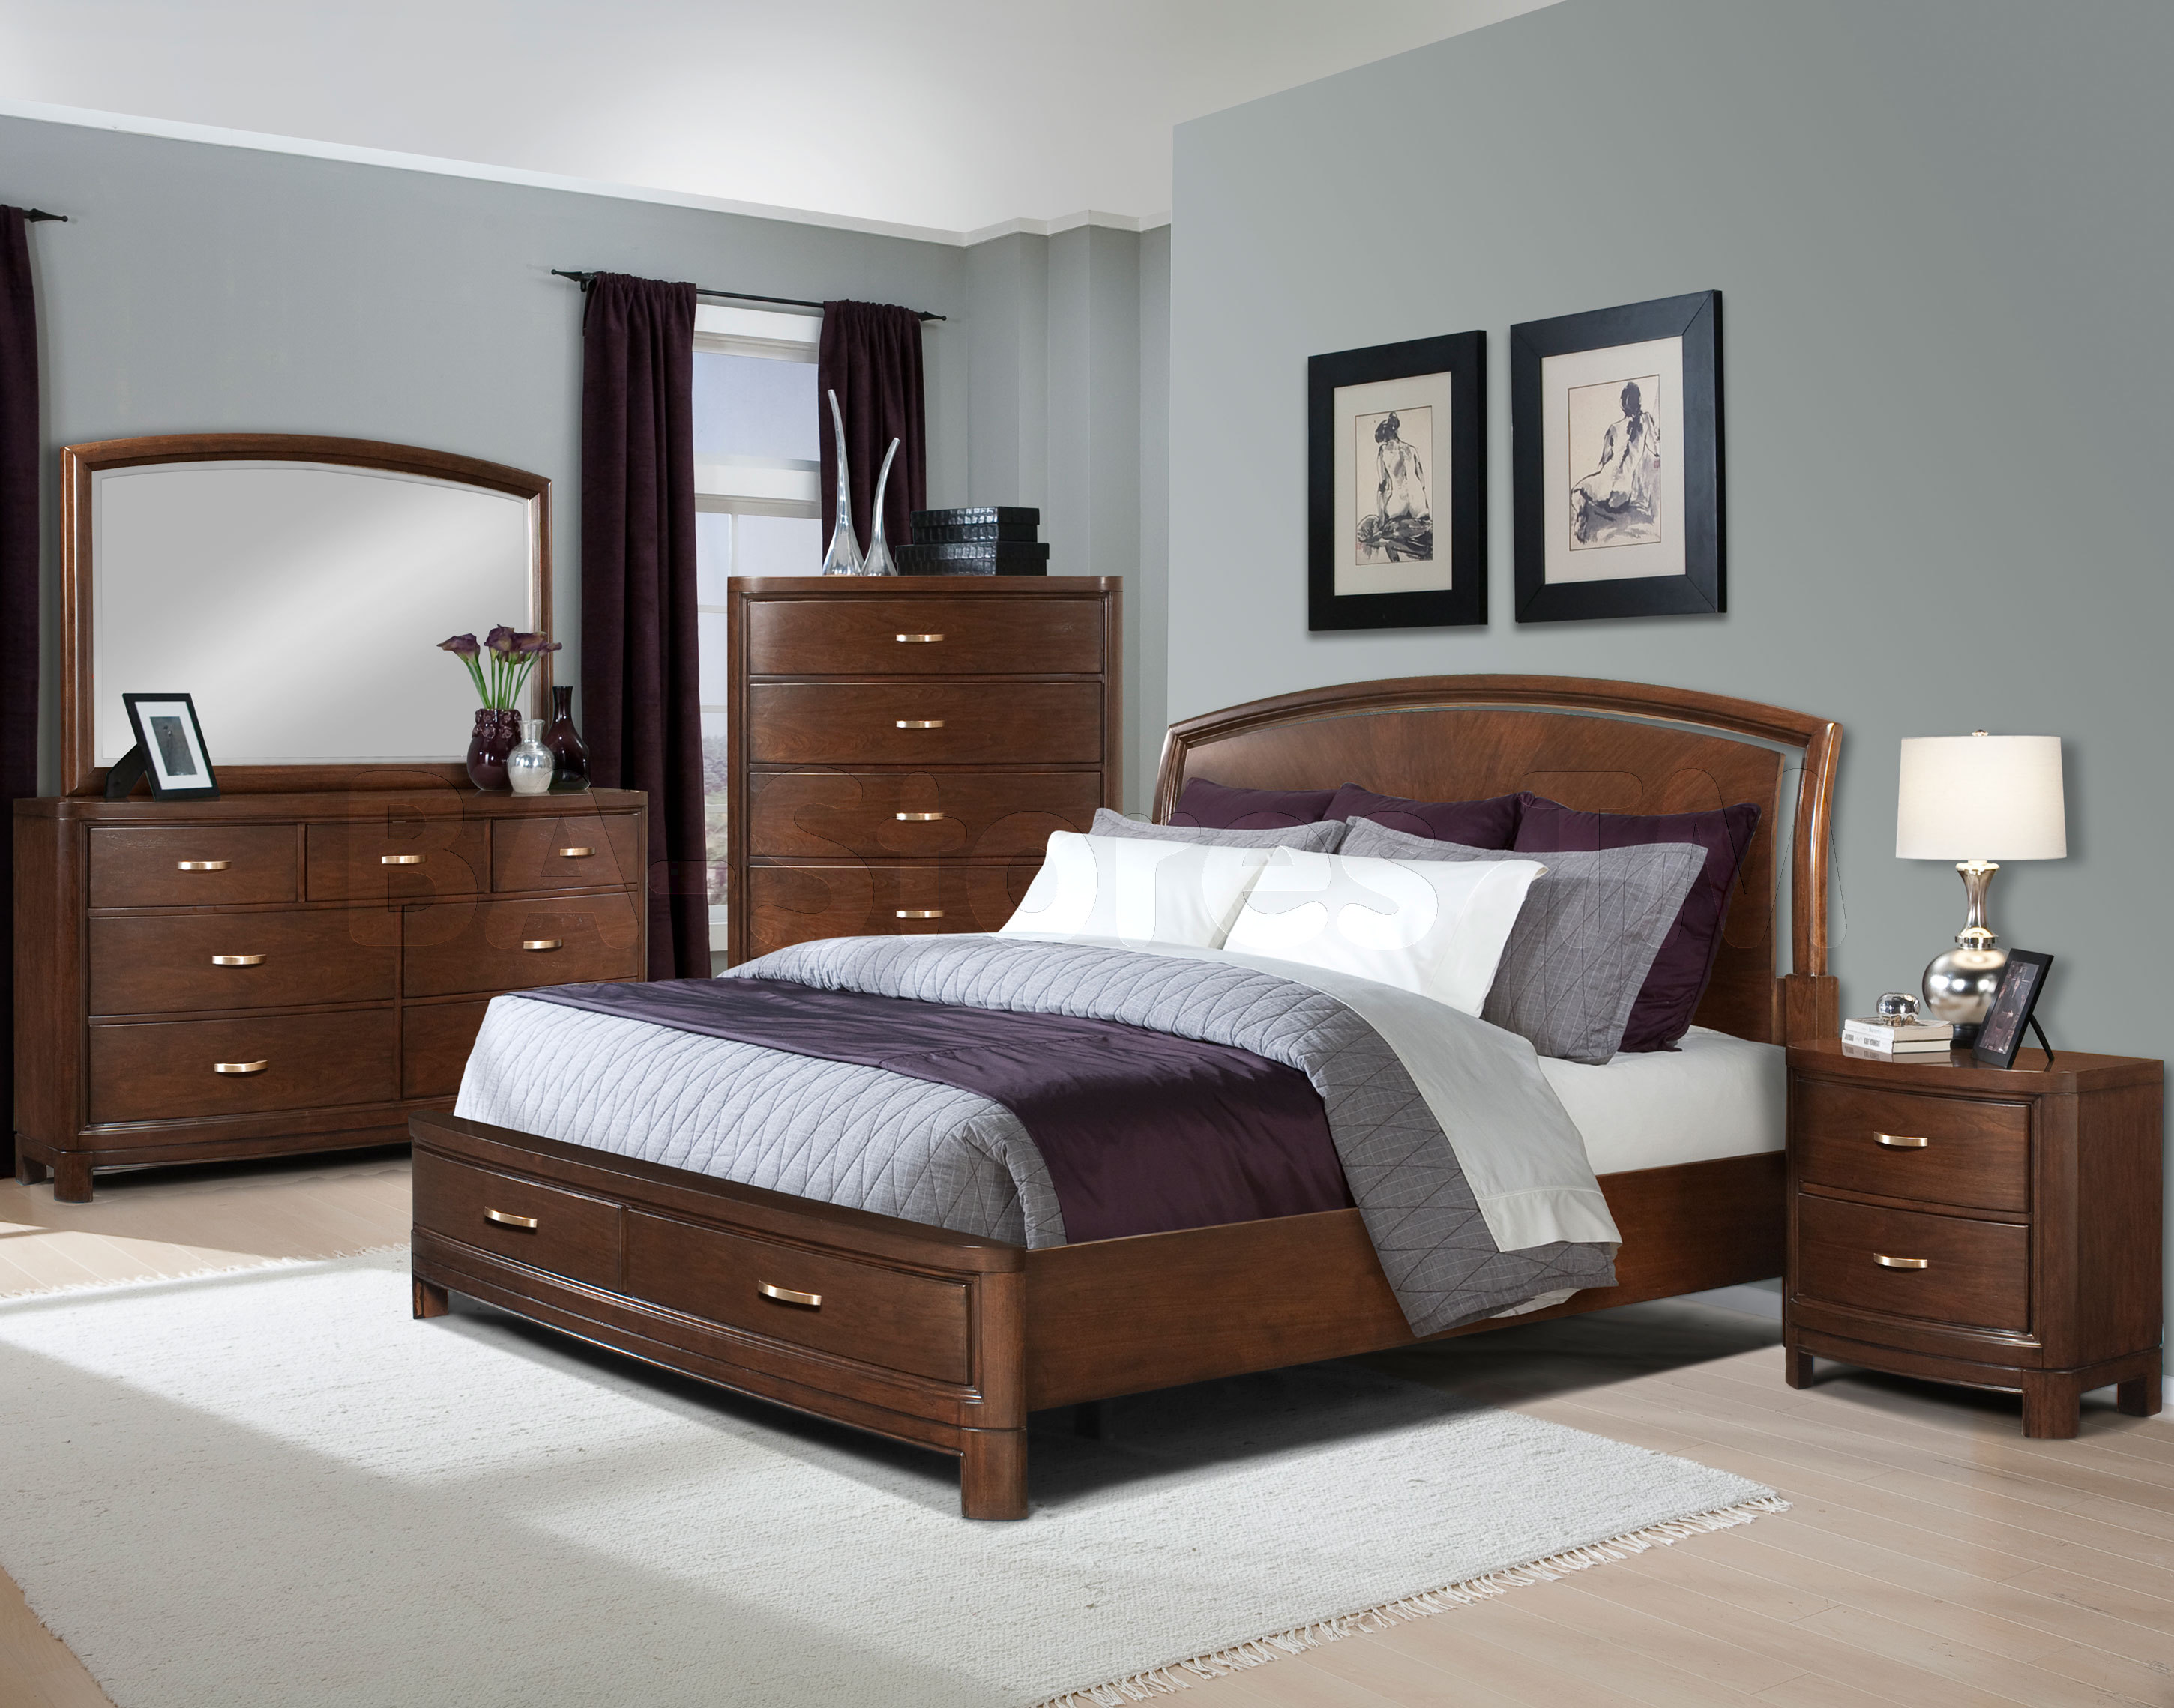 brown bedroom furniture decorating ideas photo - 3